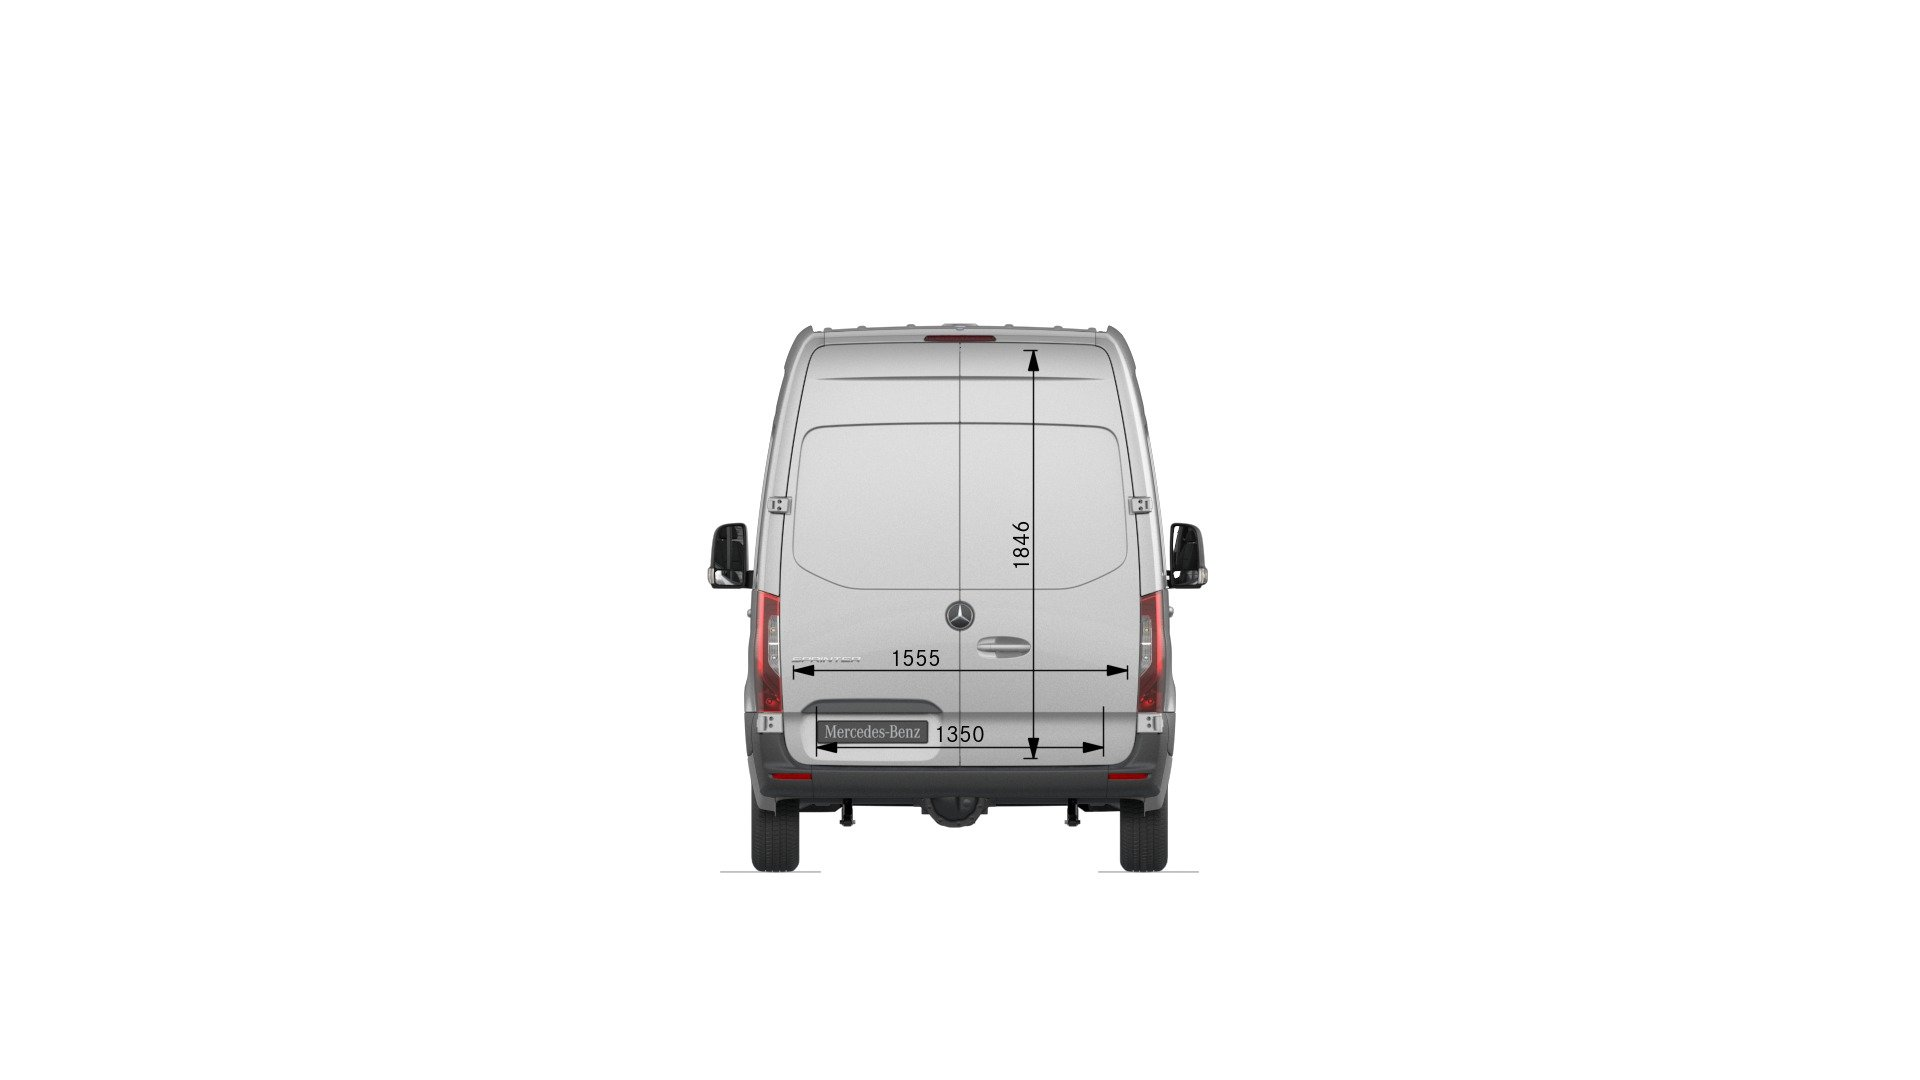 Van drawings-Rear view-standard